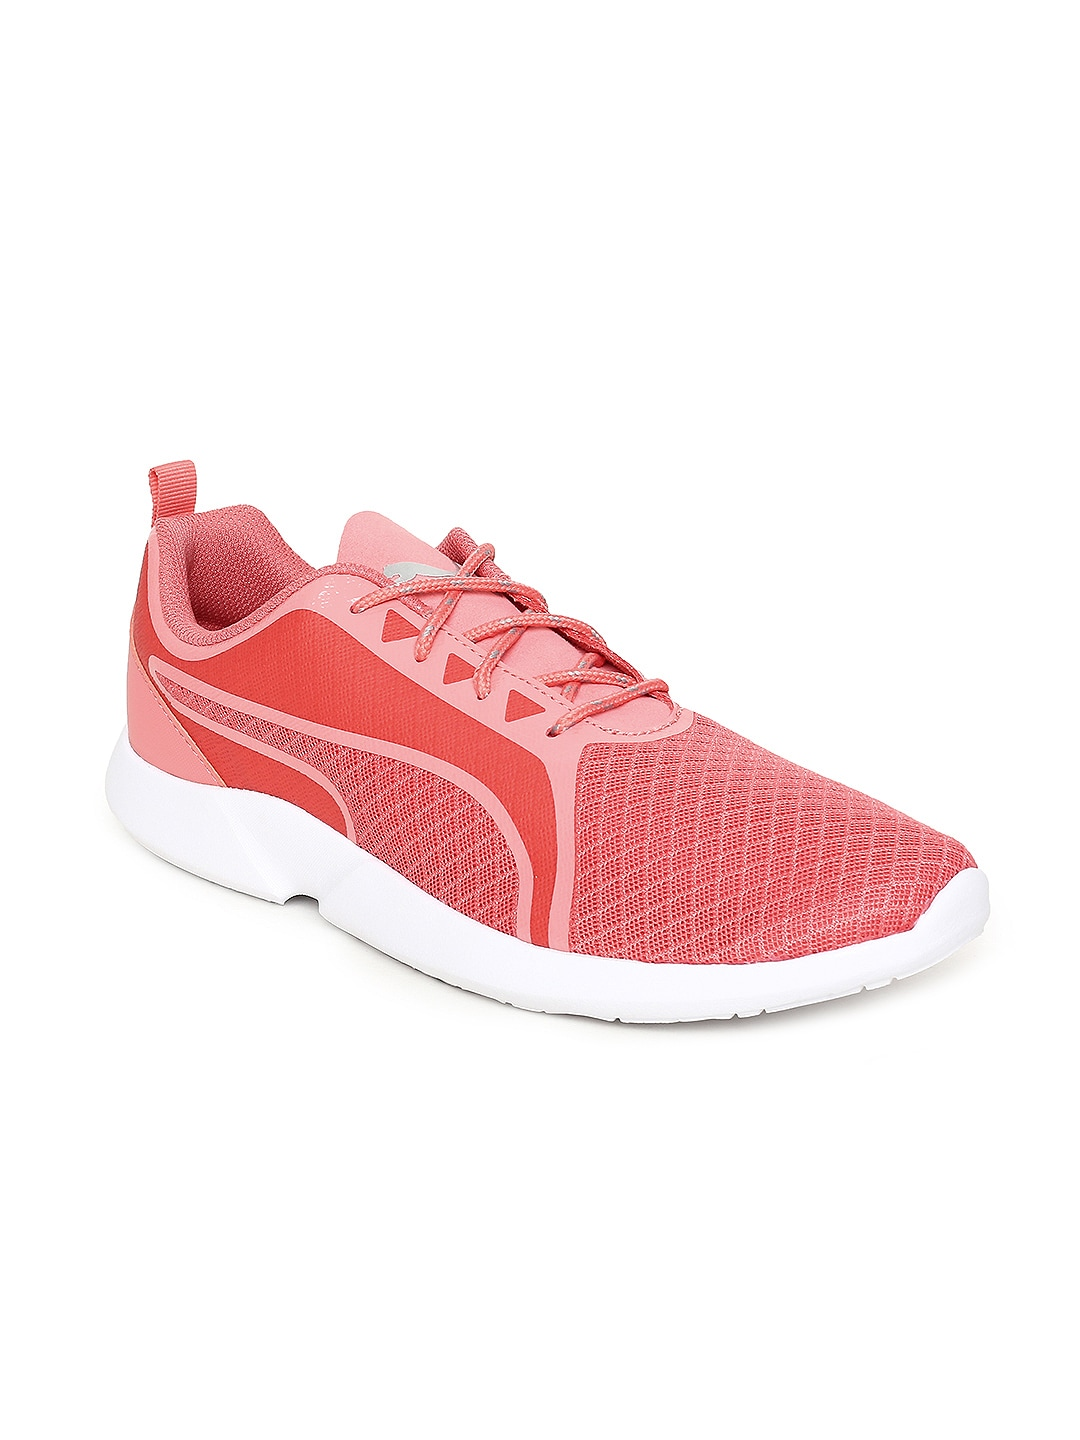 Buy Puma Women Pink   White Pacer Next Cage GK Woven Design Sneakers ... c1d070f03